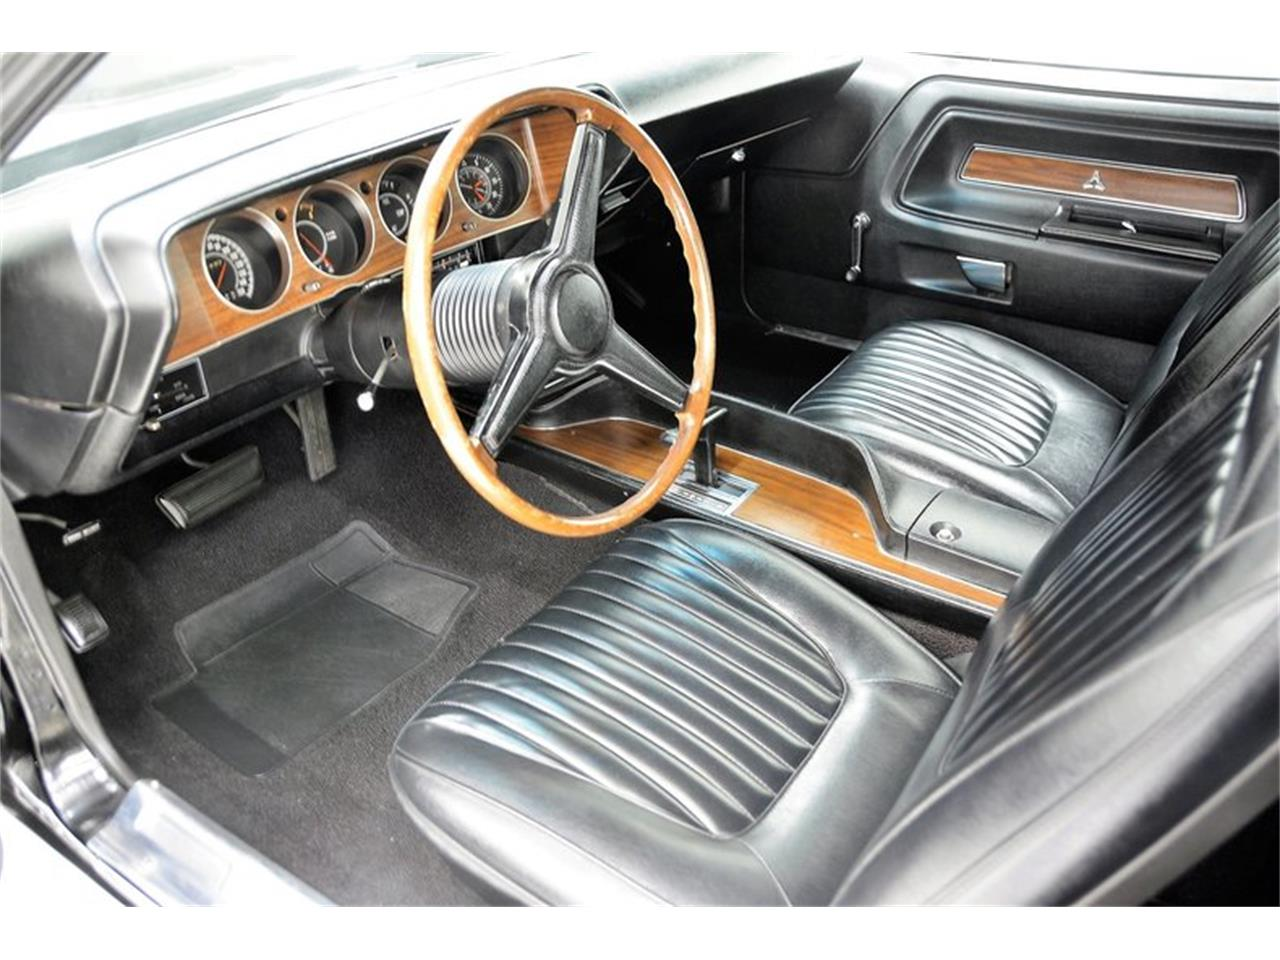 Large Picture of 1971 Challenger R/T located in Morgantown Pennsylvania - $195,000.00 - MZFX